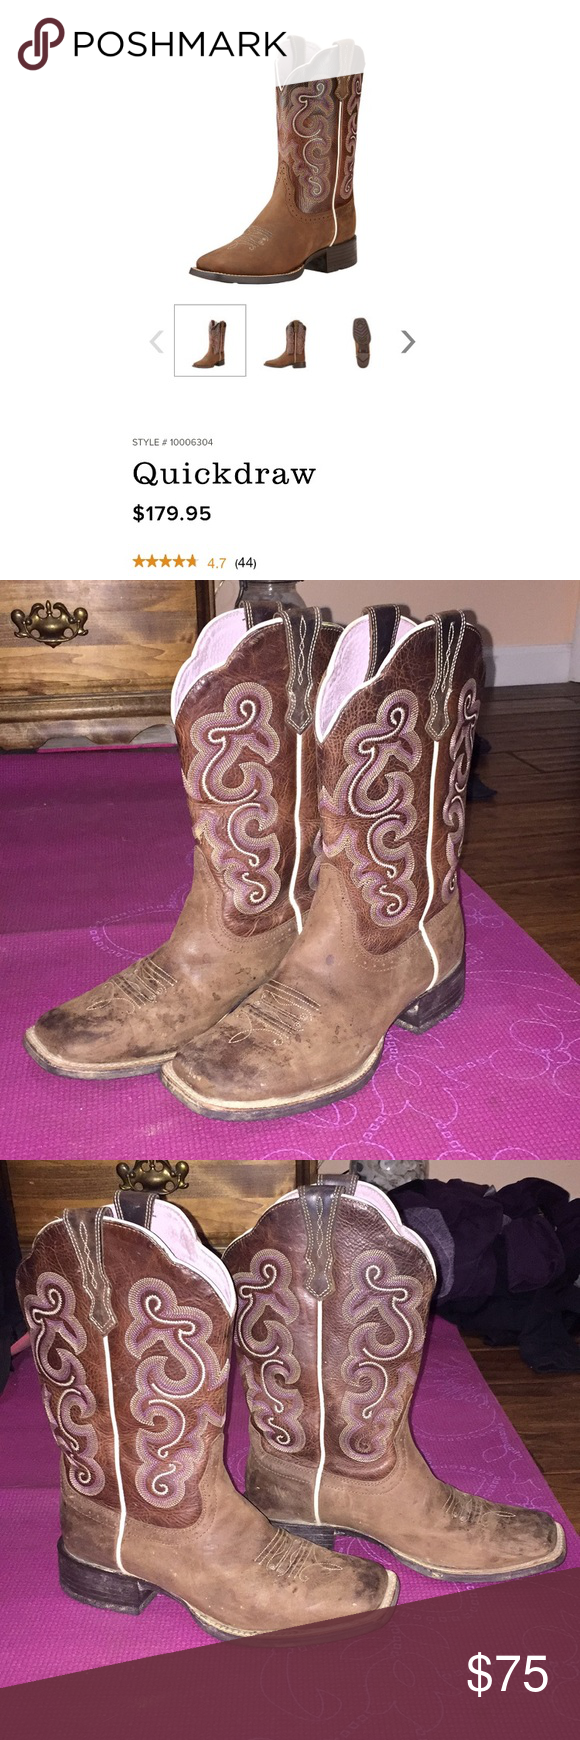 b353d3f9a46 Ariat QuickDraw Women s boots 7.5 Ariat QuickDraw Badlands Brown boots Size  7.5 Toe shape  wide square •comfortable (I wear an 8 and these are 7.5    fit ...